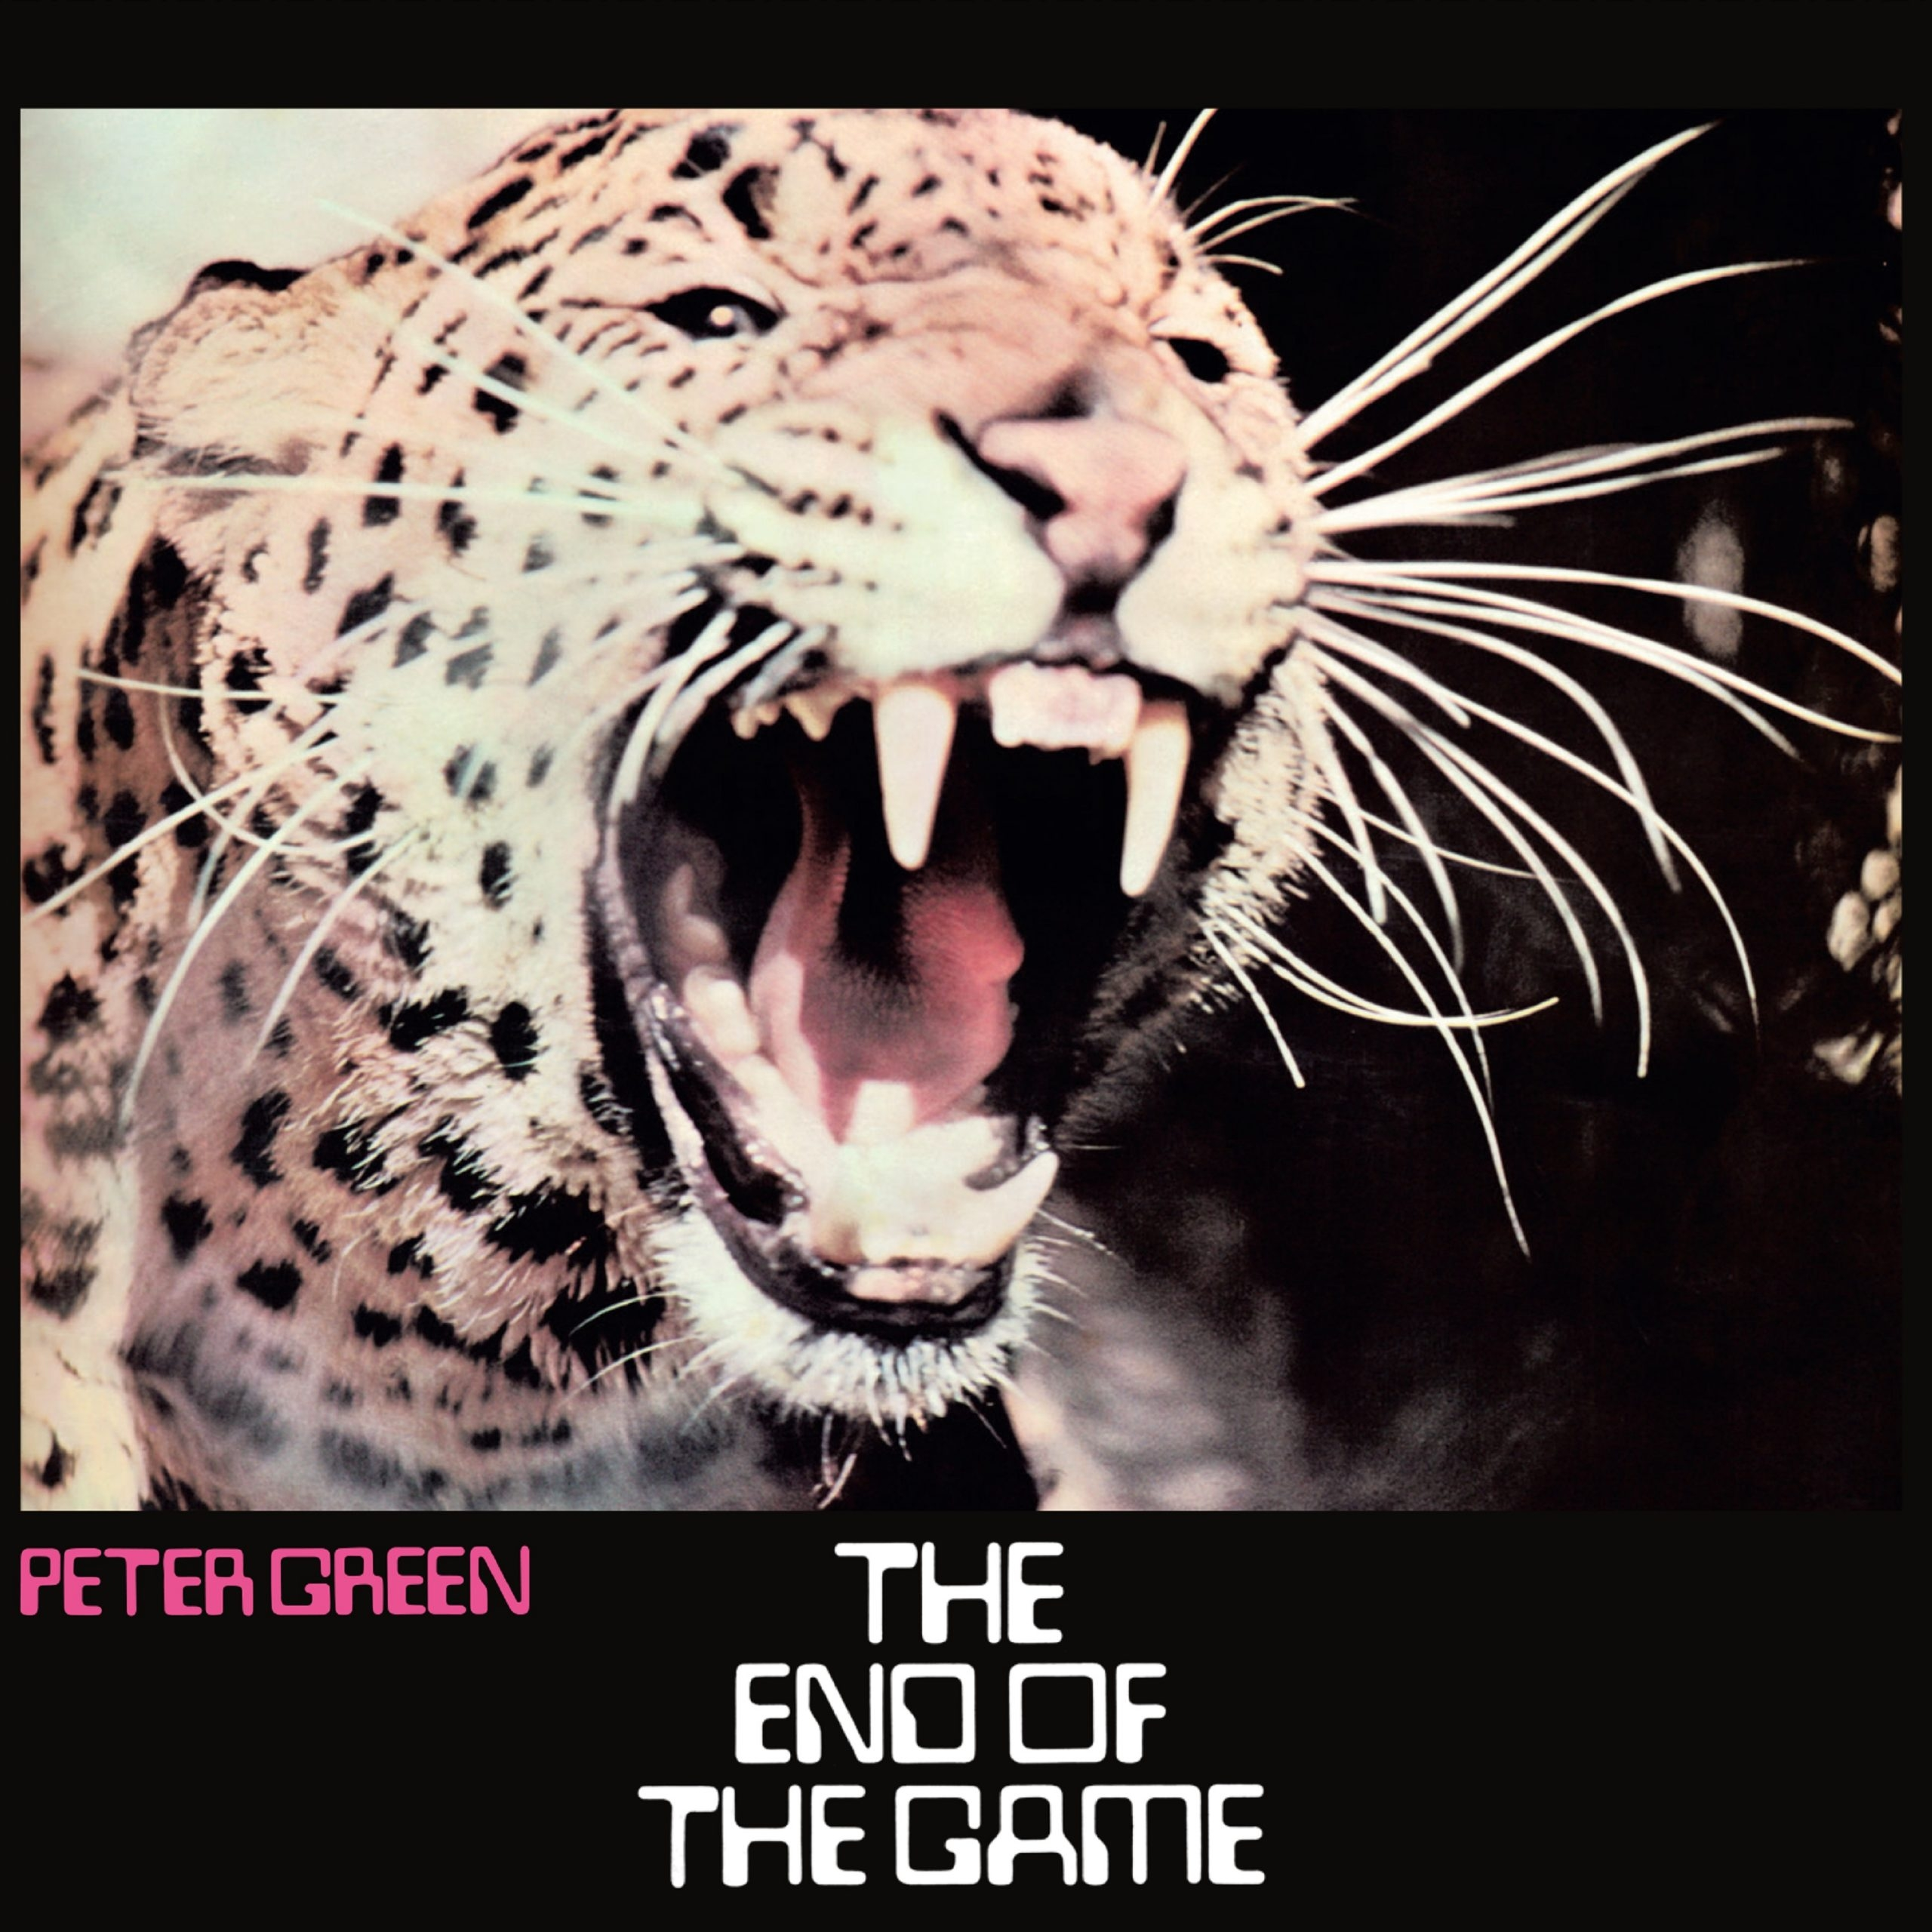 The End Of The Game, 50th Anniversary Remastered & Expanded CD Edition